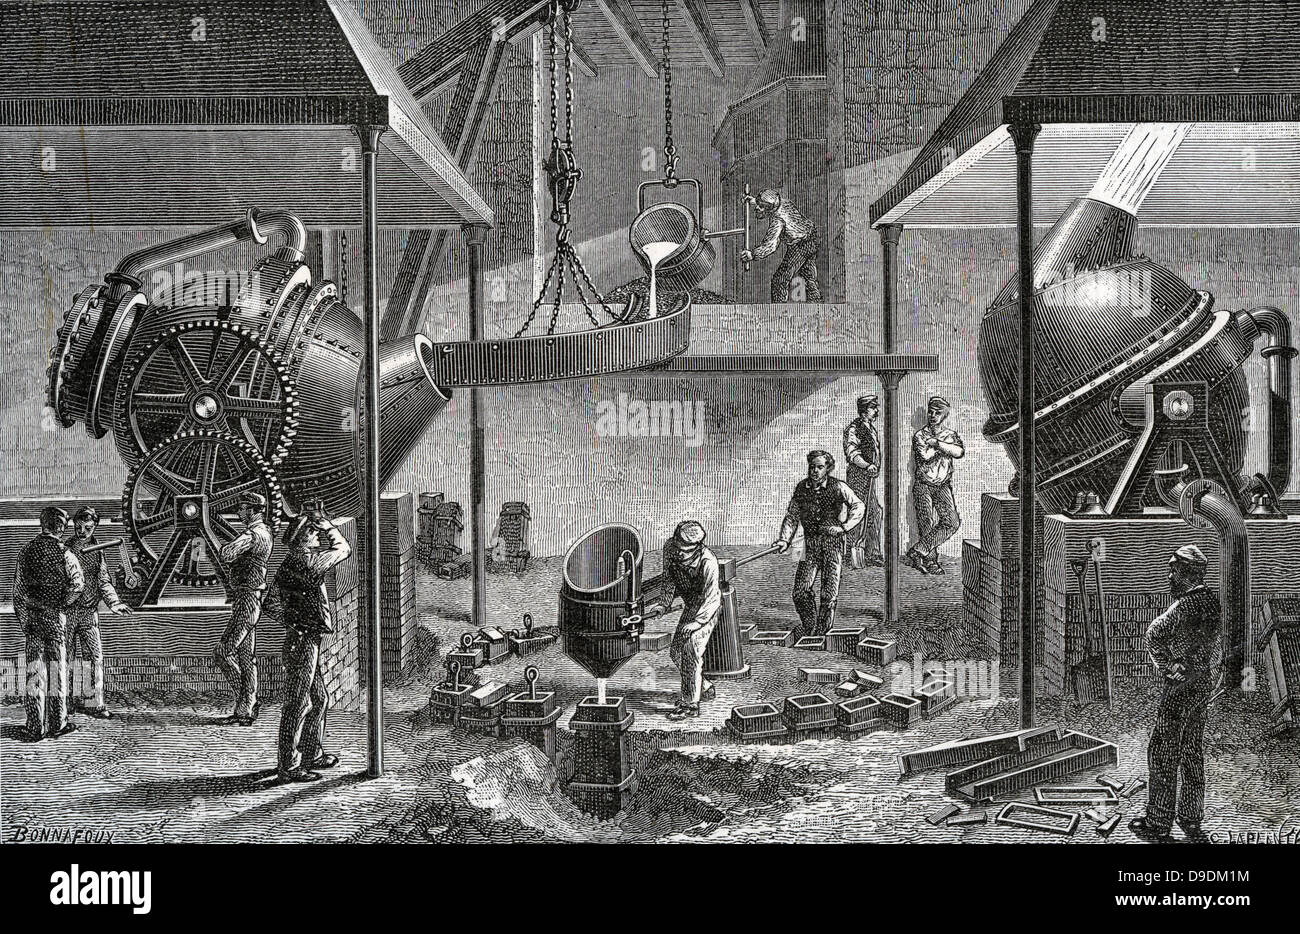 Bessemer process for mass-production of steel from pig iron converting in operation at steel works, Sheffield, England. - Stock Image